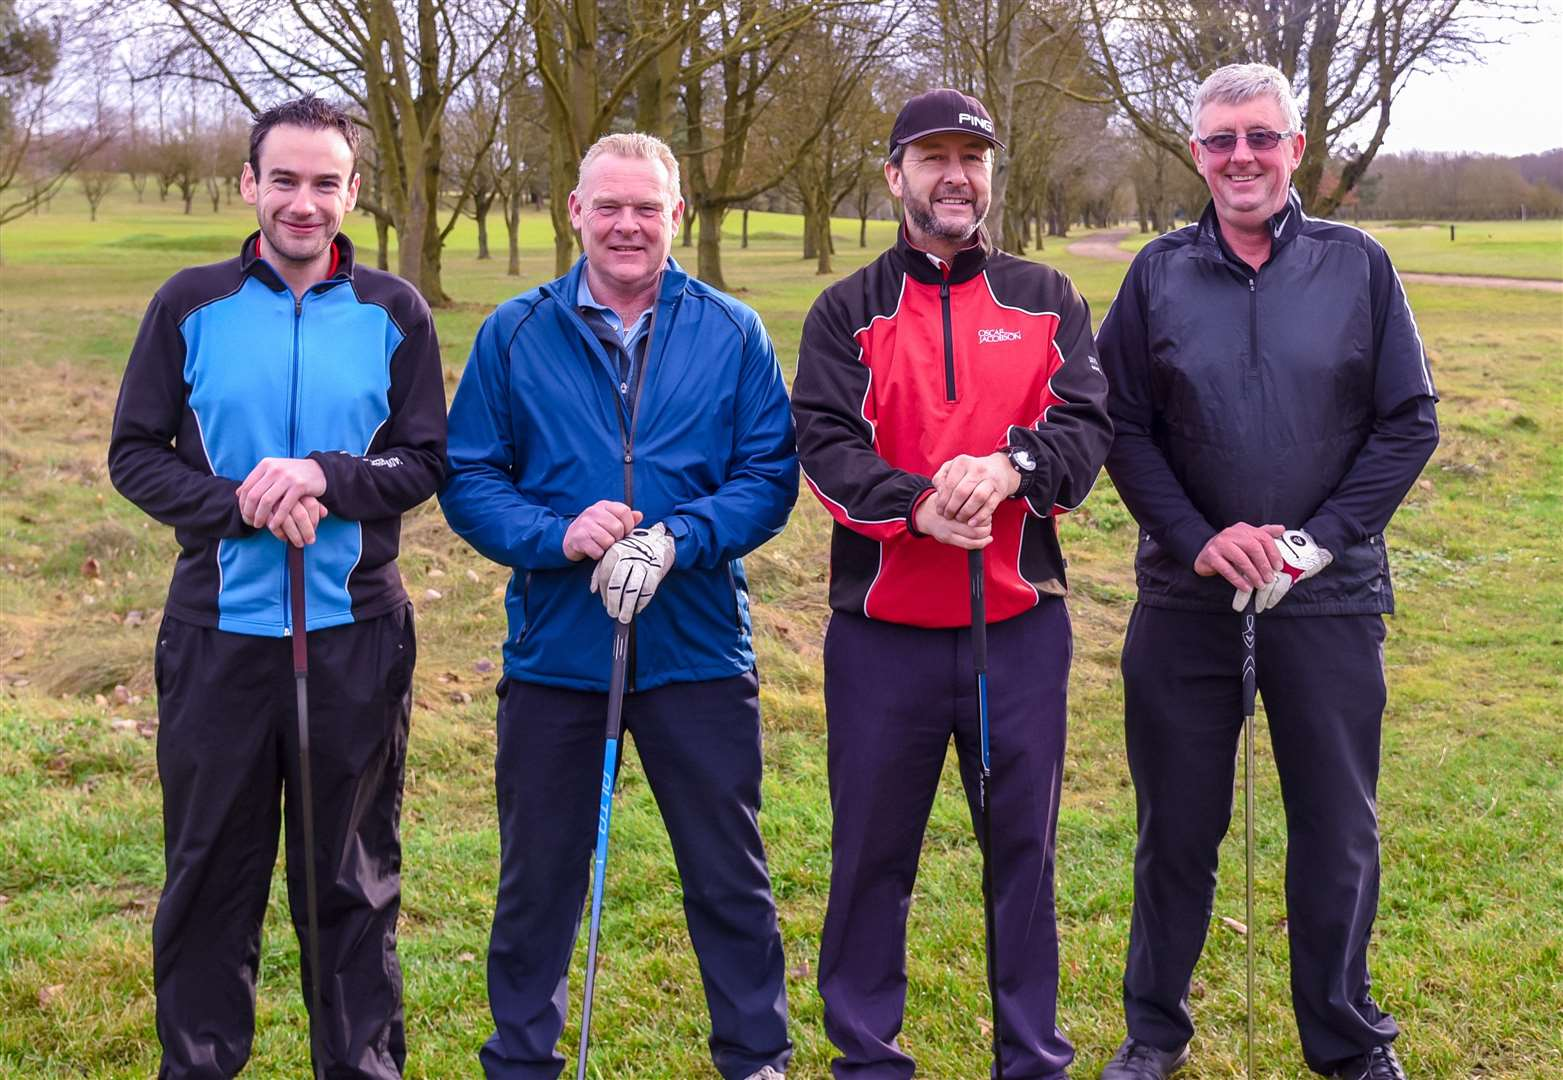 Adam Hooper-Greenhill, Carl Brinkley, Andrew Thurlbourn & Aubrey Nice at Bury GC third round of the Winter Goblets - photo Chris Boughton (6570309)